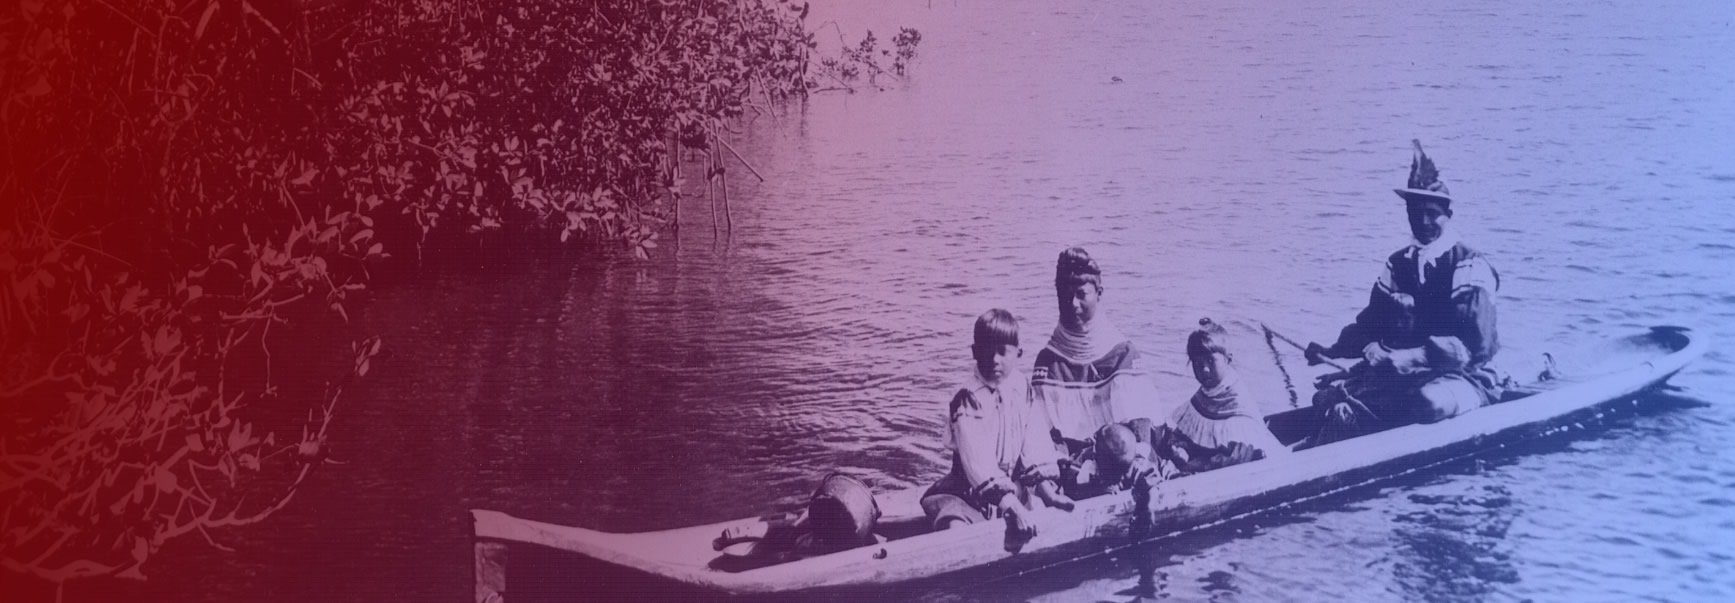 Florida seminole indians Relationship with